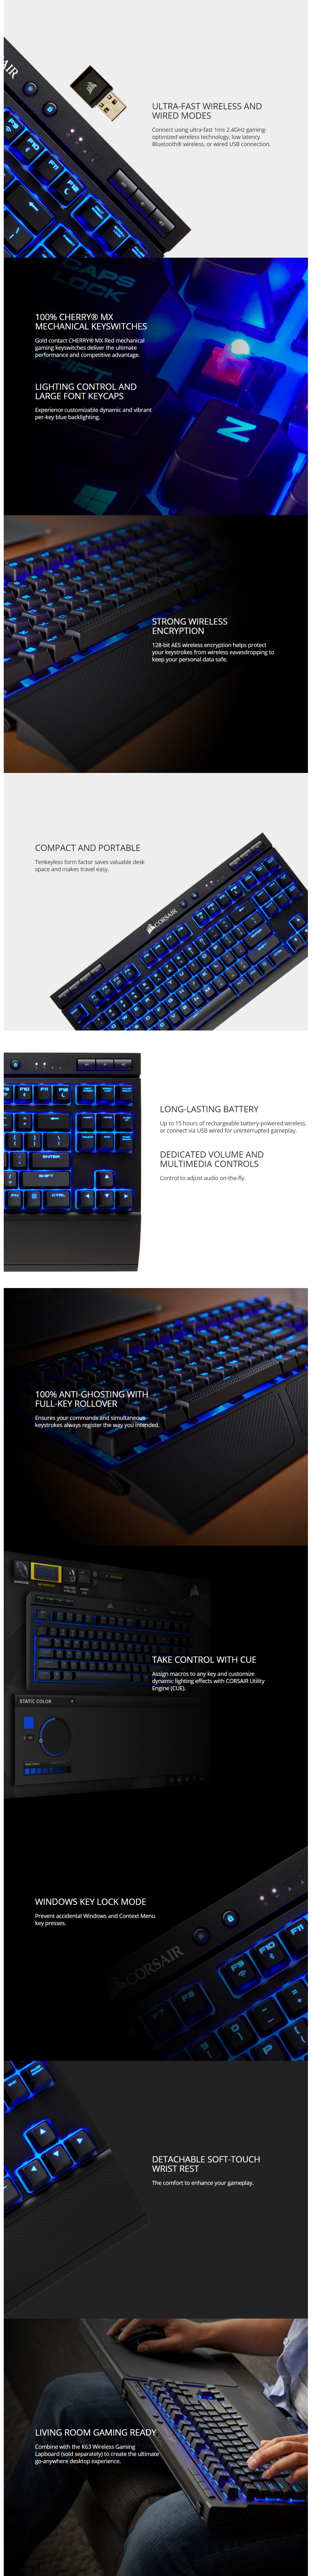 Corsair K63 Blue LED Wireless Mech Gaming KB (Cherry MX Red)